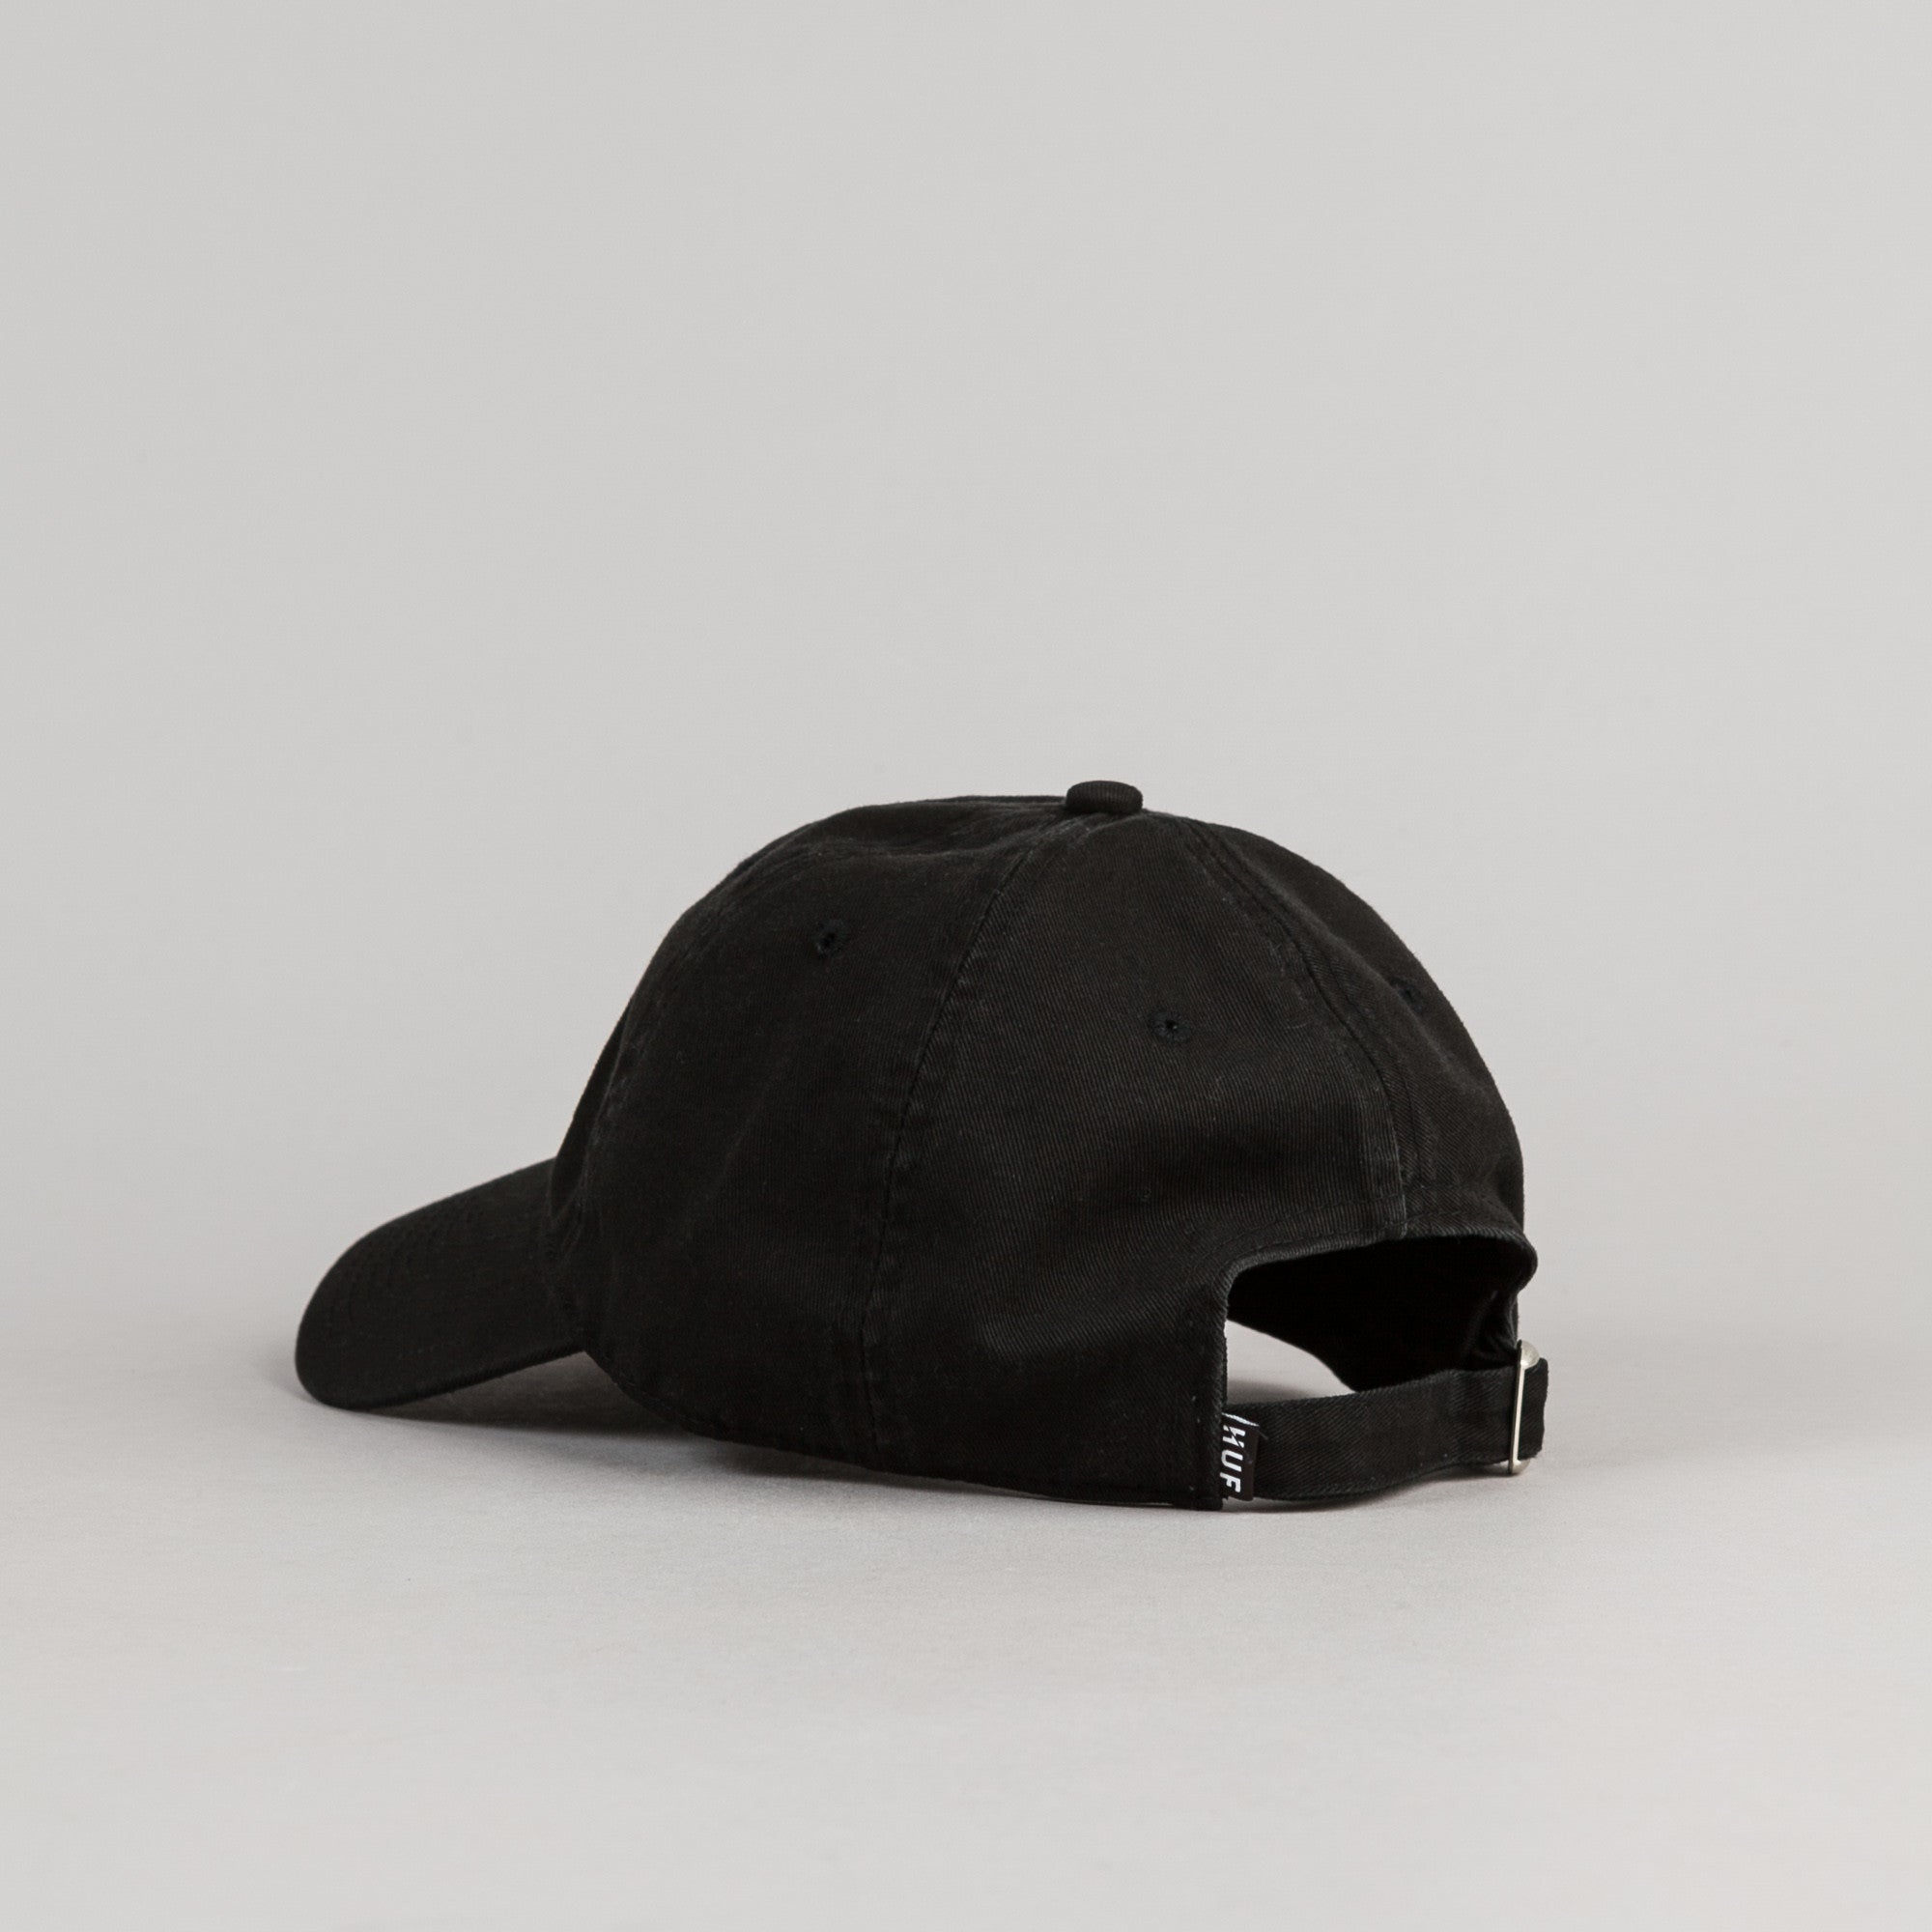 HUF Triple Triangle Dad Cap - Black